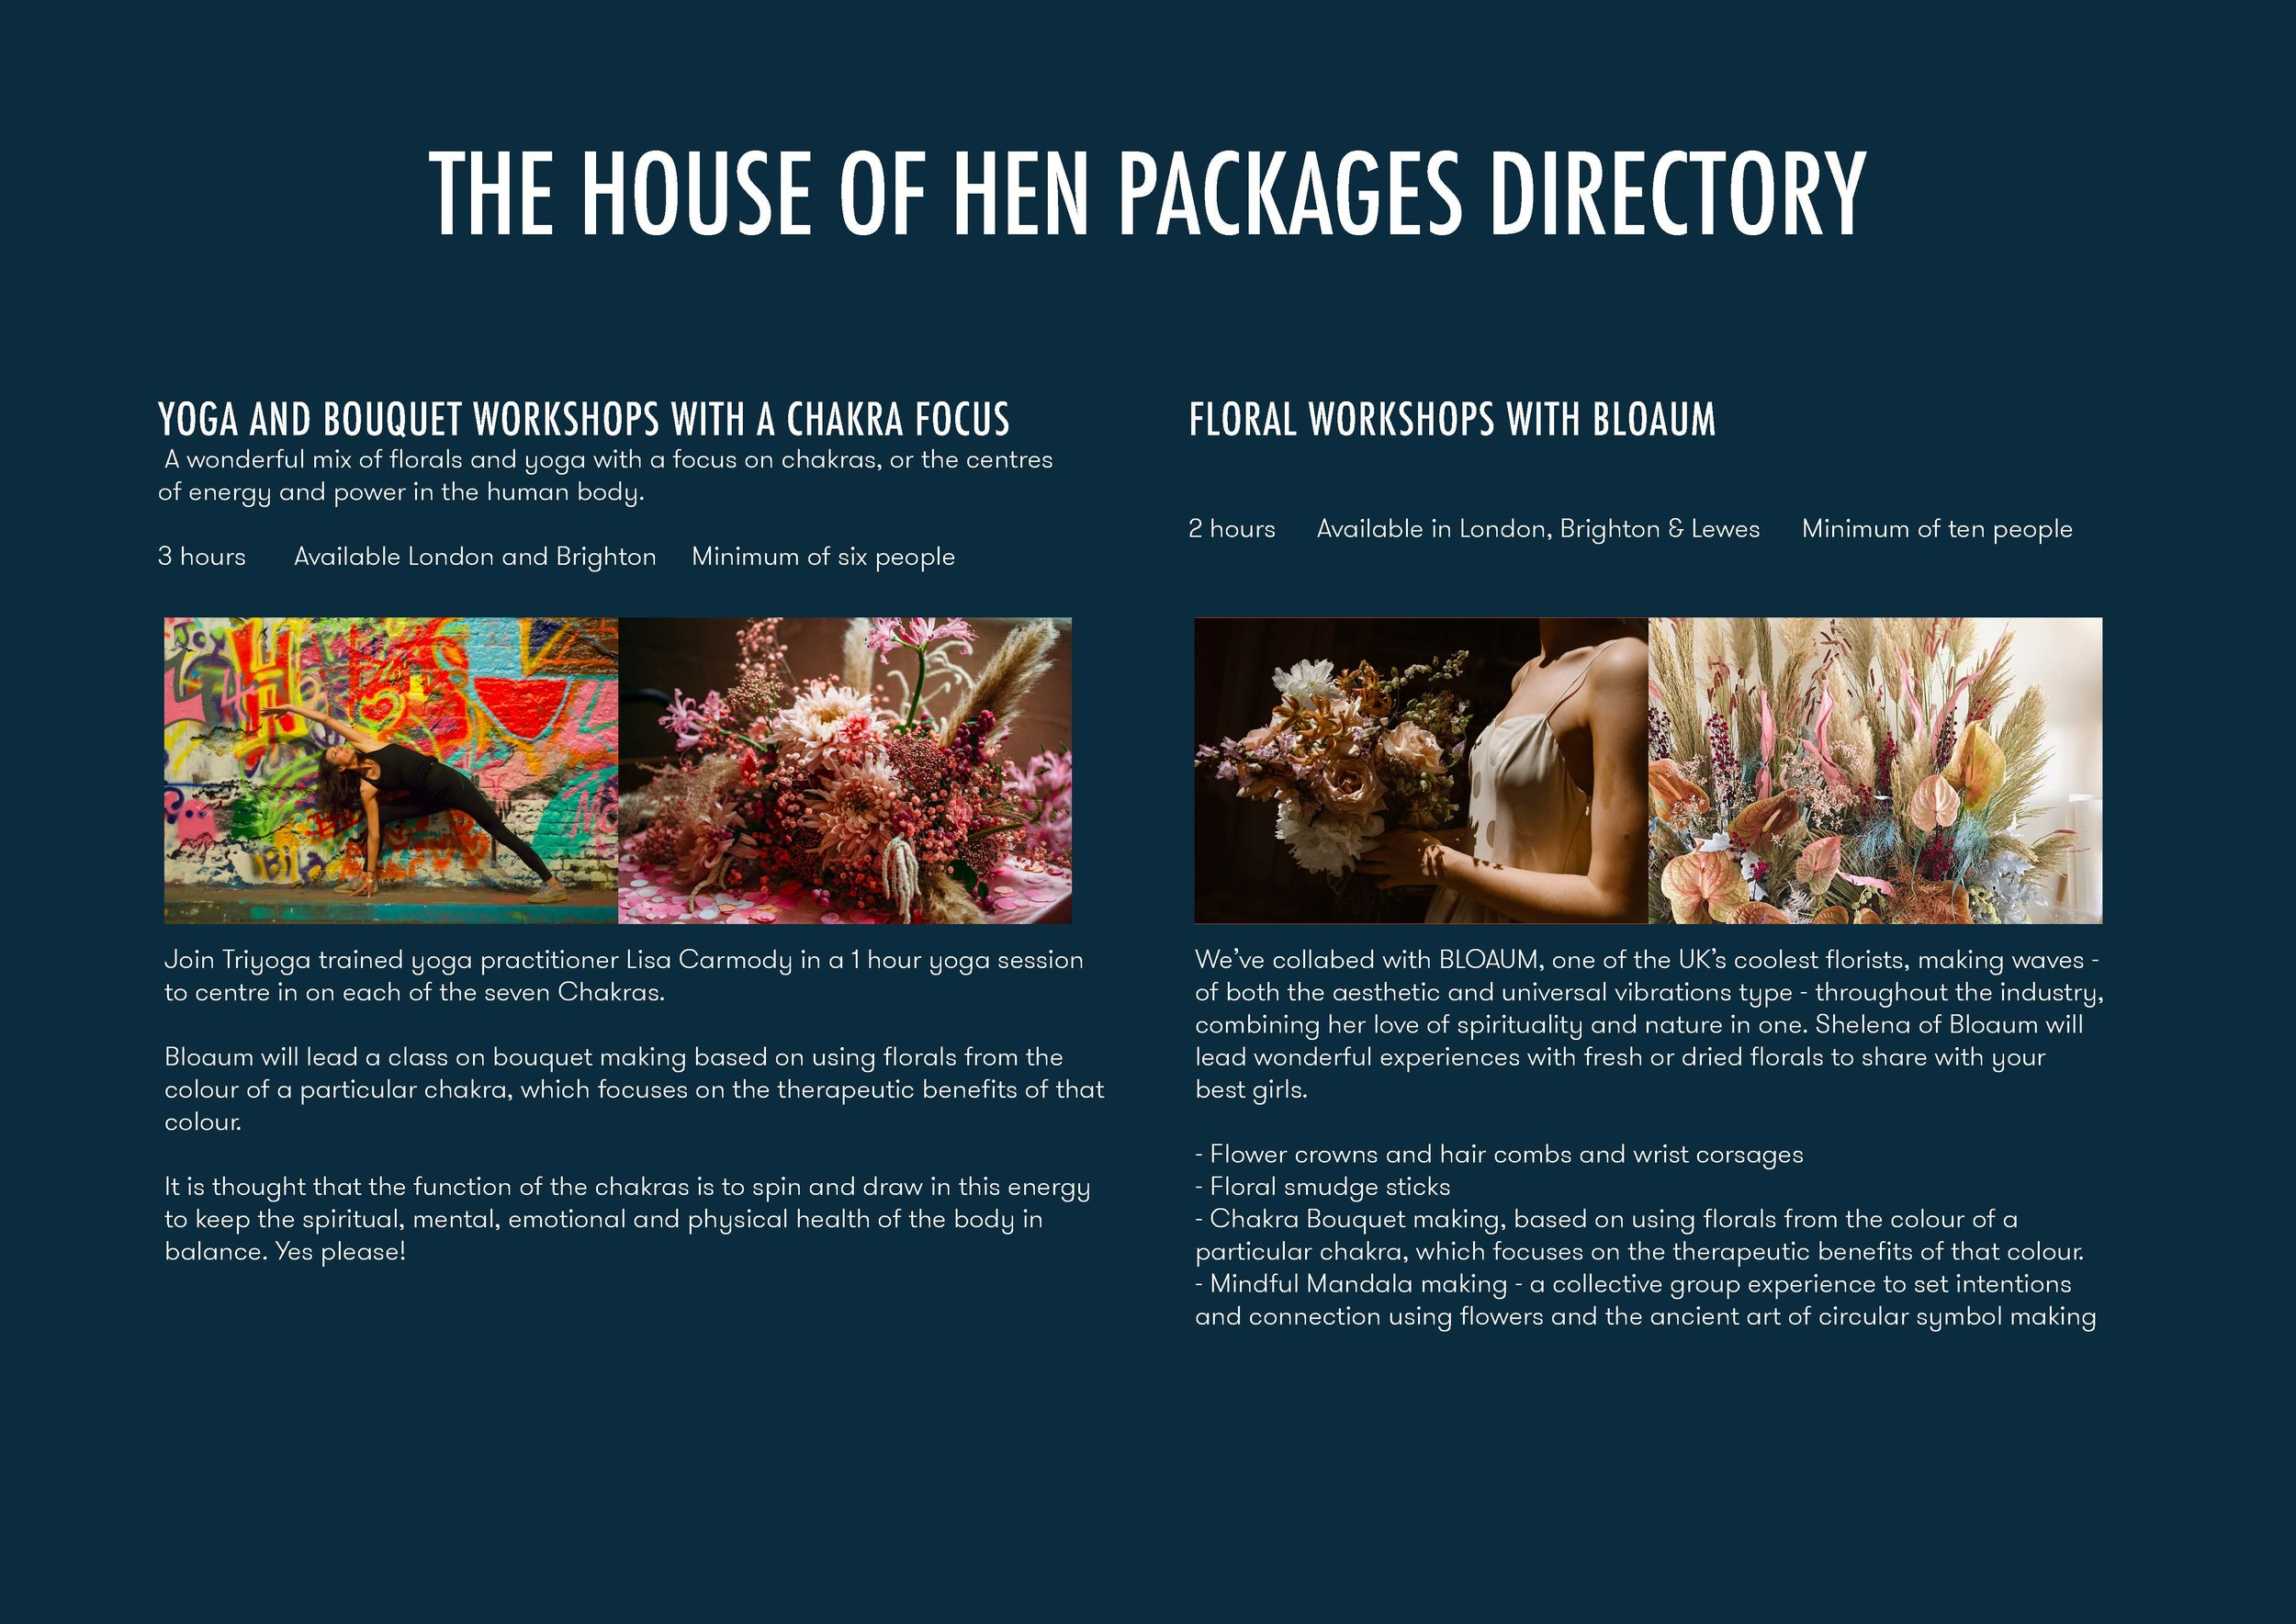 House of Hen_Packages Directory_Page_08.jpg